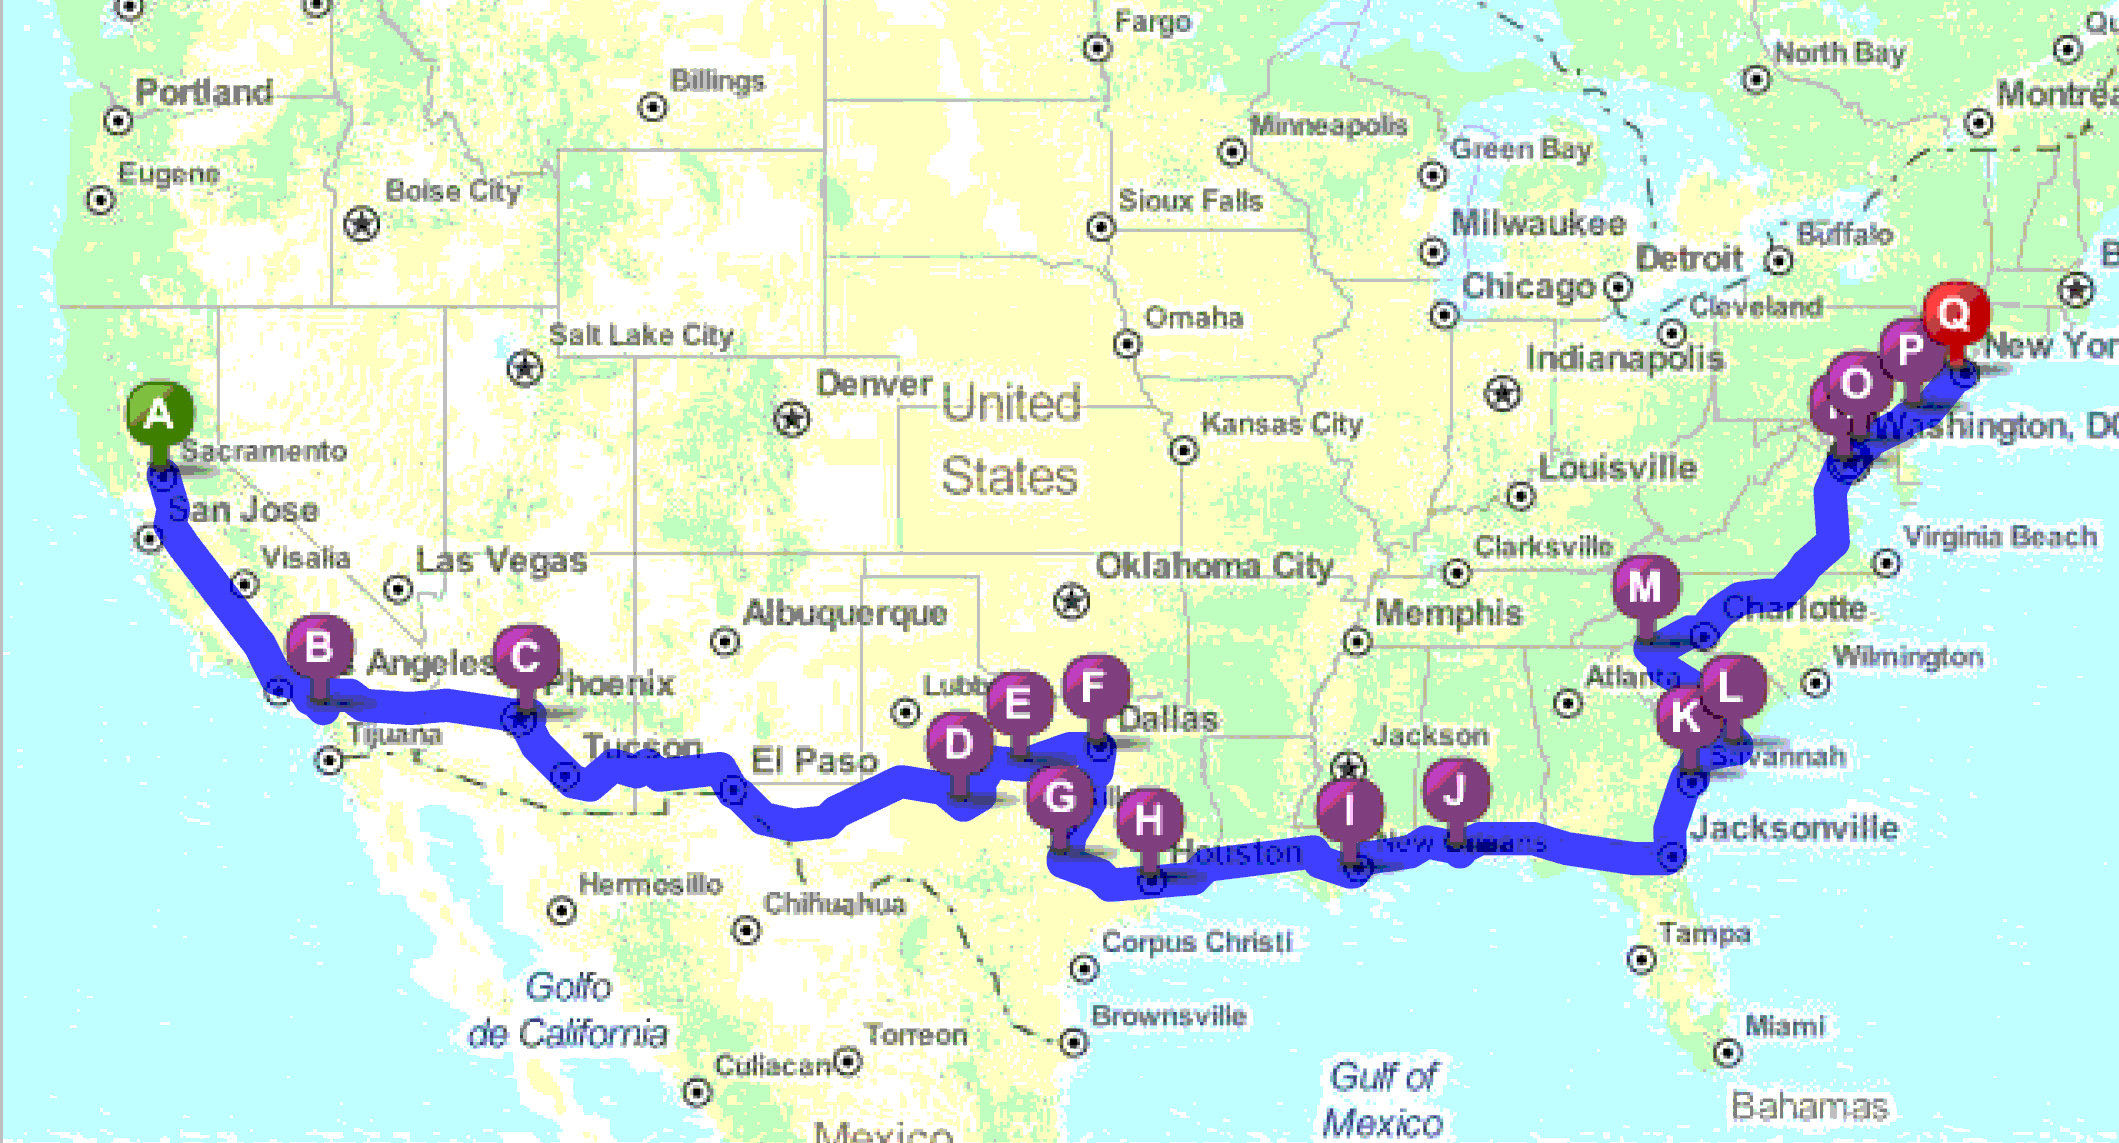 MapQuest GPS Navigation Maps Android Apps On Google Play Usa Map - Mapquest free us maps by google